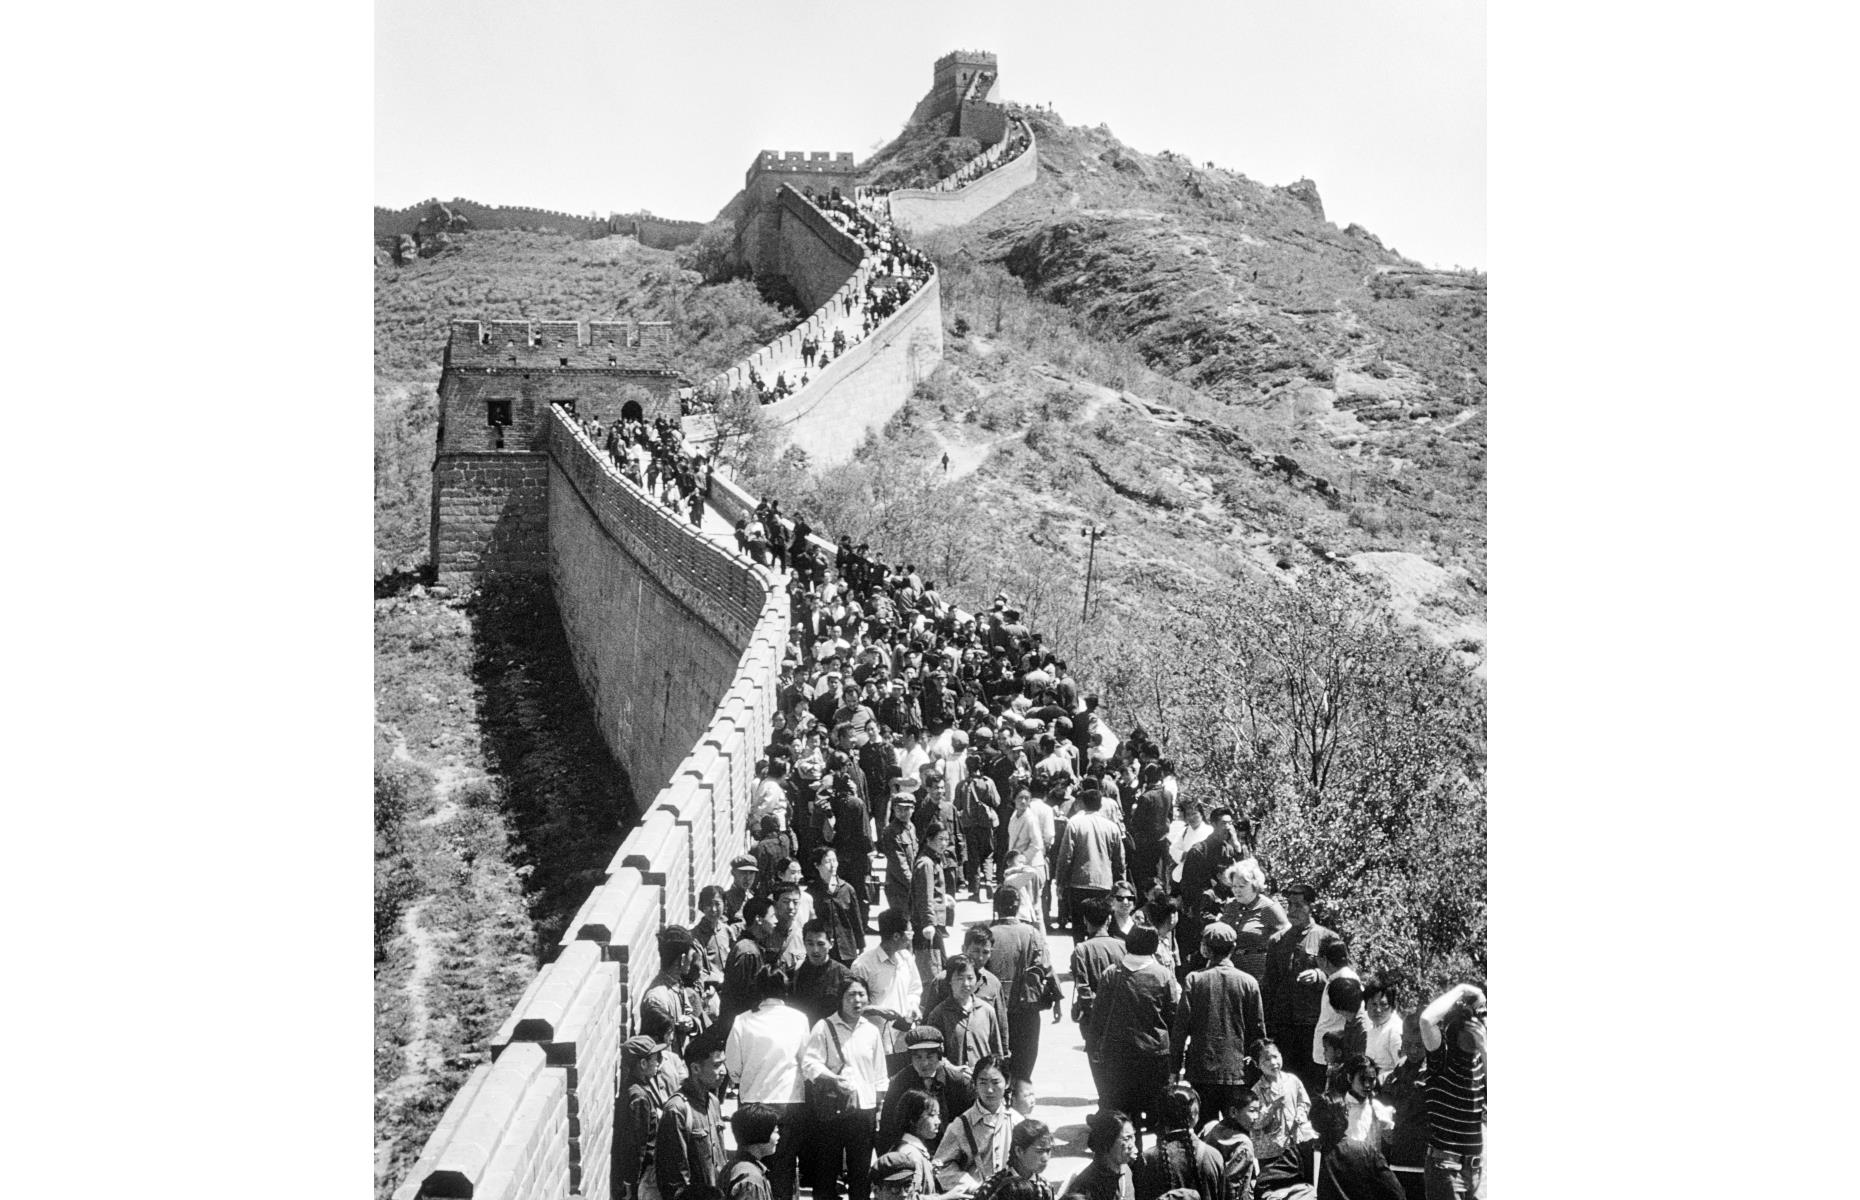 Slide 45 of 51: It turns out overcrowding at the Great Wall of China is nothing new – if this photograph from the 1970s is anything to go by. The landmark, which has an official length of 13,170 miles (21,196km), was mainly built during the Ming dynasty, which lasted between 1368 and 1644. In 2018, the most popular section of the Great Wall, Badaling, received more than 9.9 million visitors, reaching 80,000 a day during peak season.